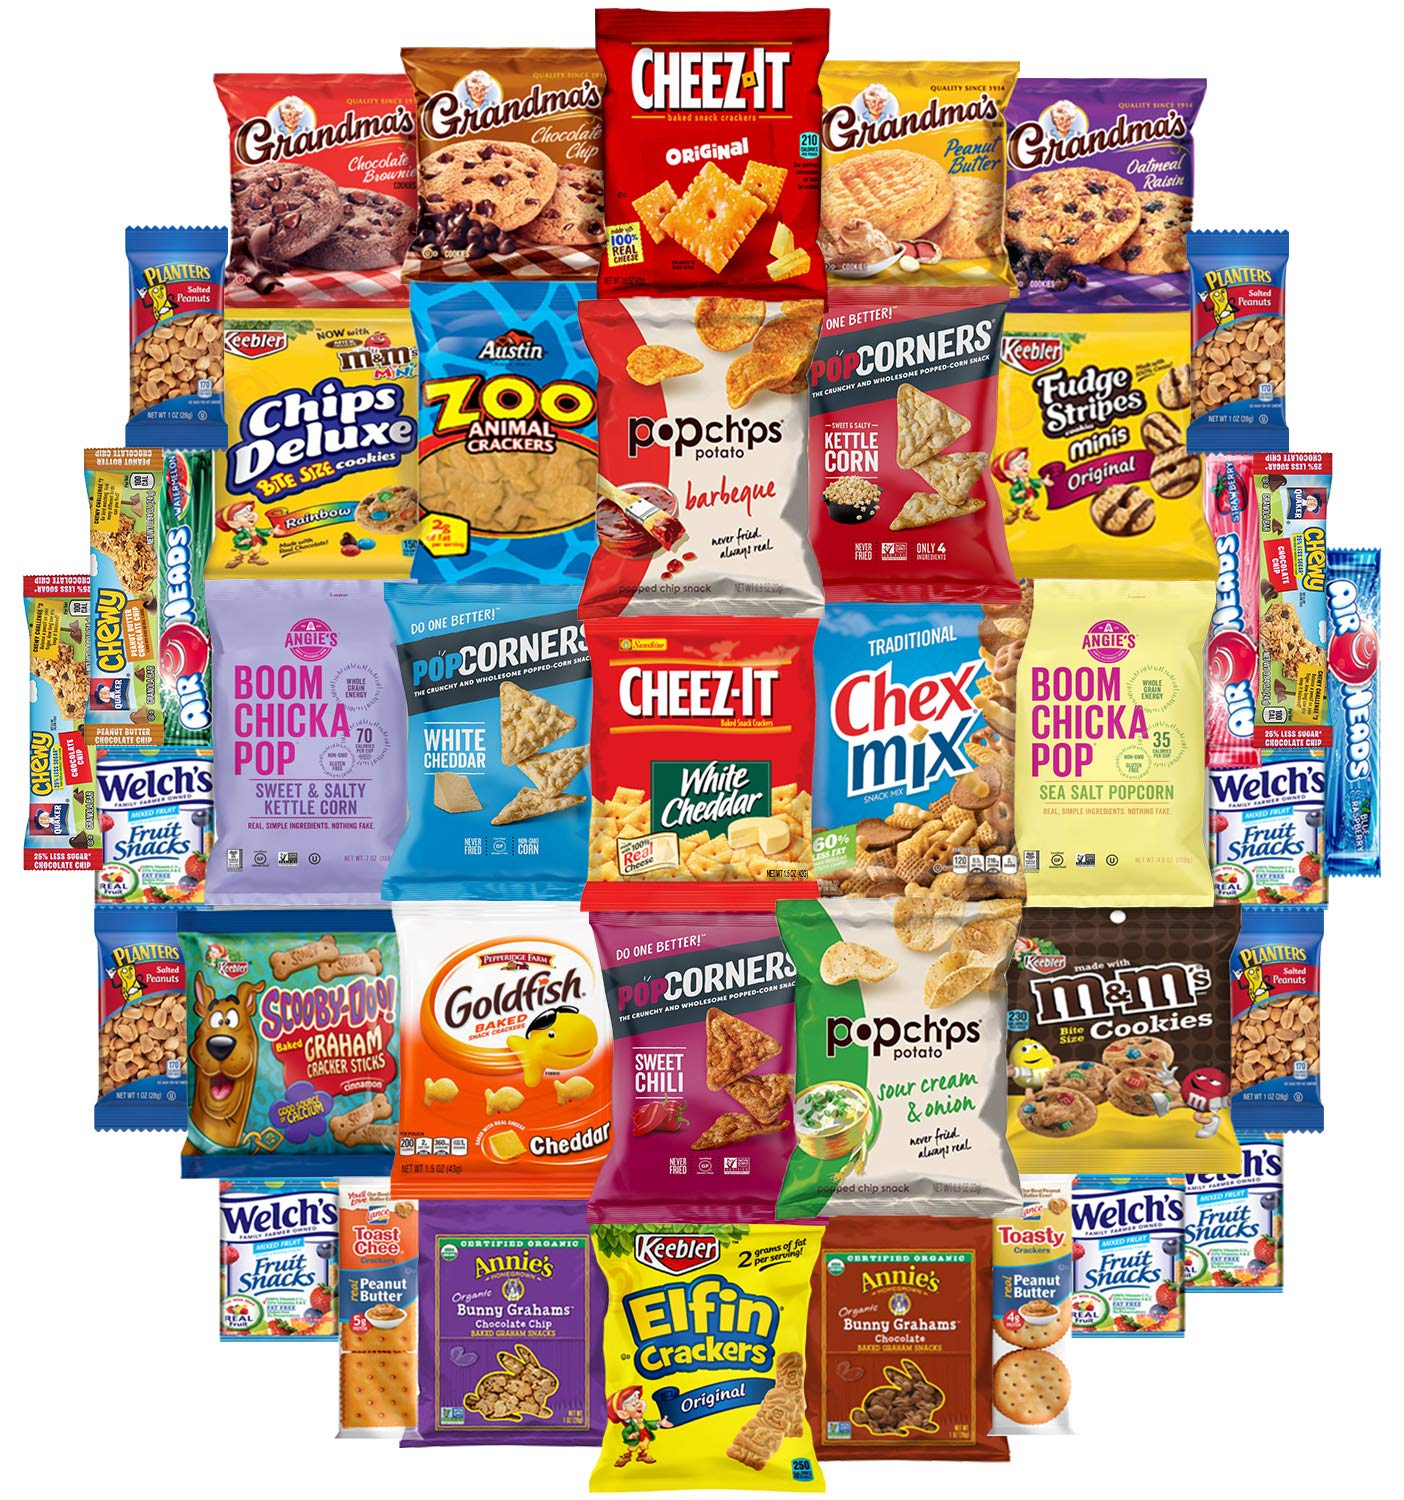 Snack Chest Snacks Care Package Gift Assortment Sampler Mixed Bars, Cookies, Chips, Candy for Office, Military, College, Meetings, Schools, Friends & Family (40 Count) by Snack Chest (Image #2)